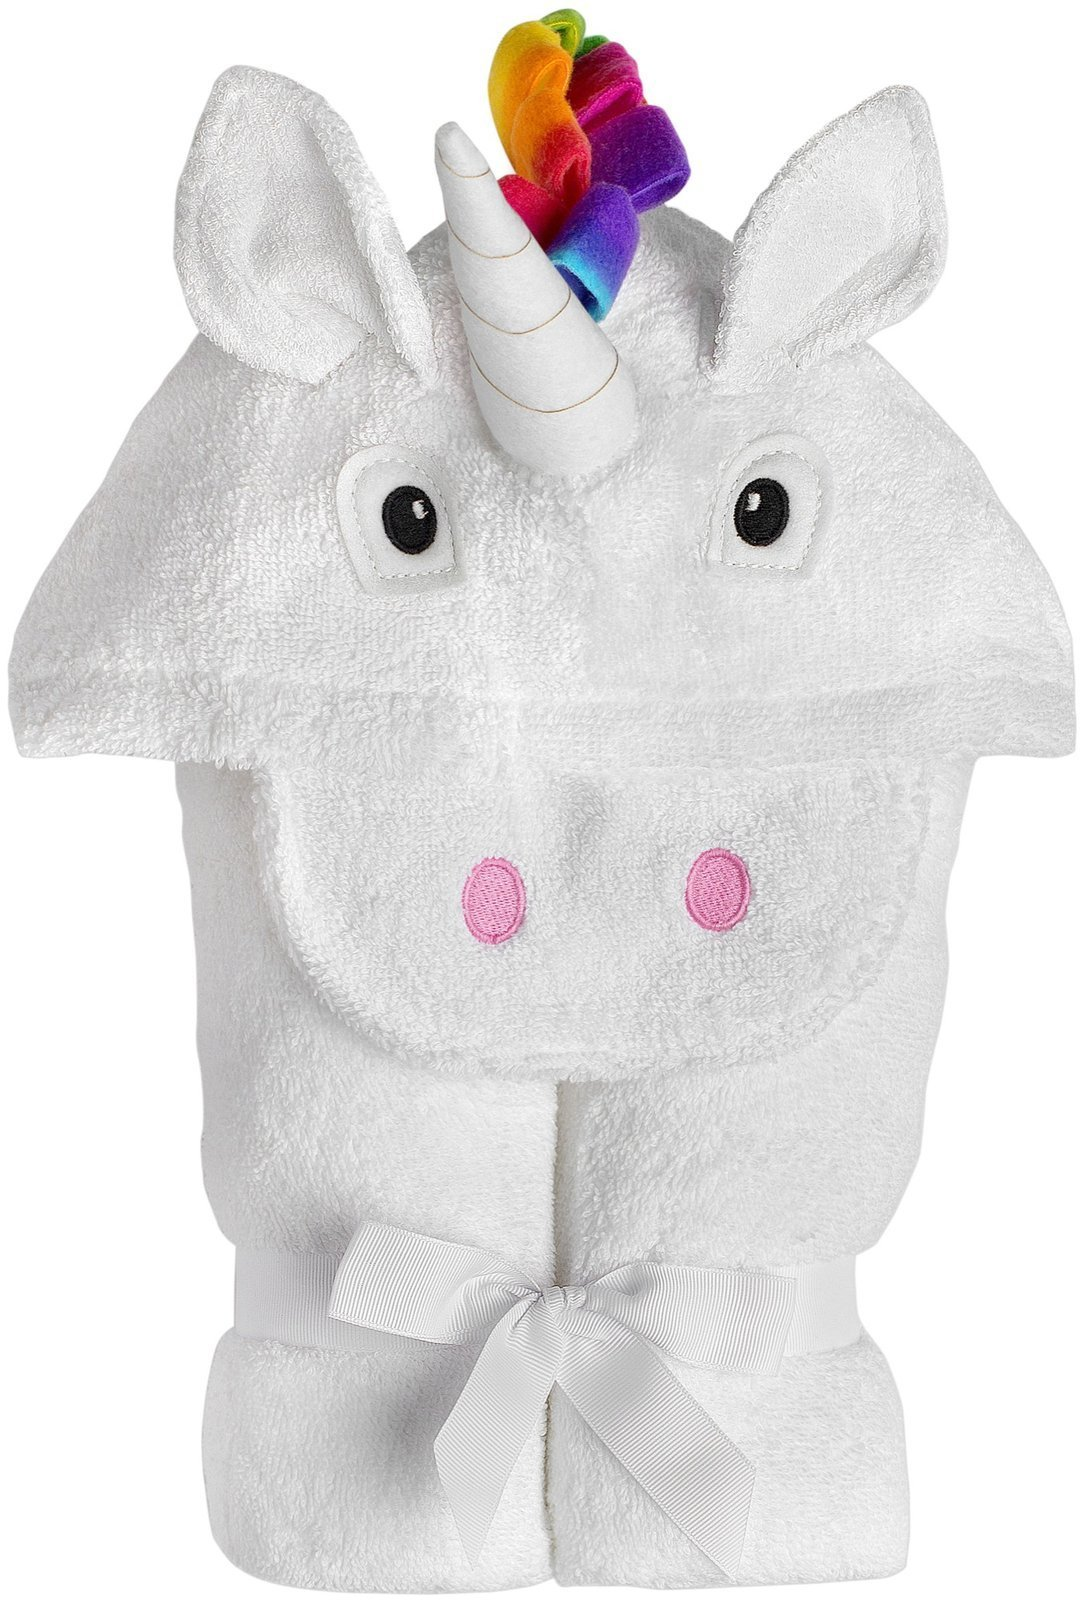 Yikes Twins Child Hooded Towel - Unicorn by Yikes Twins